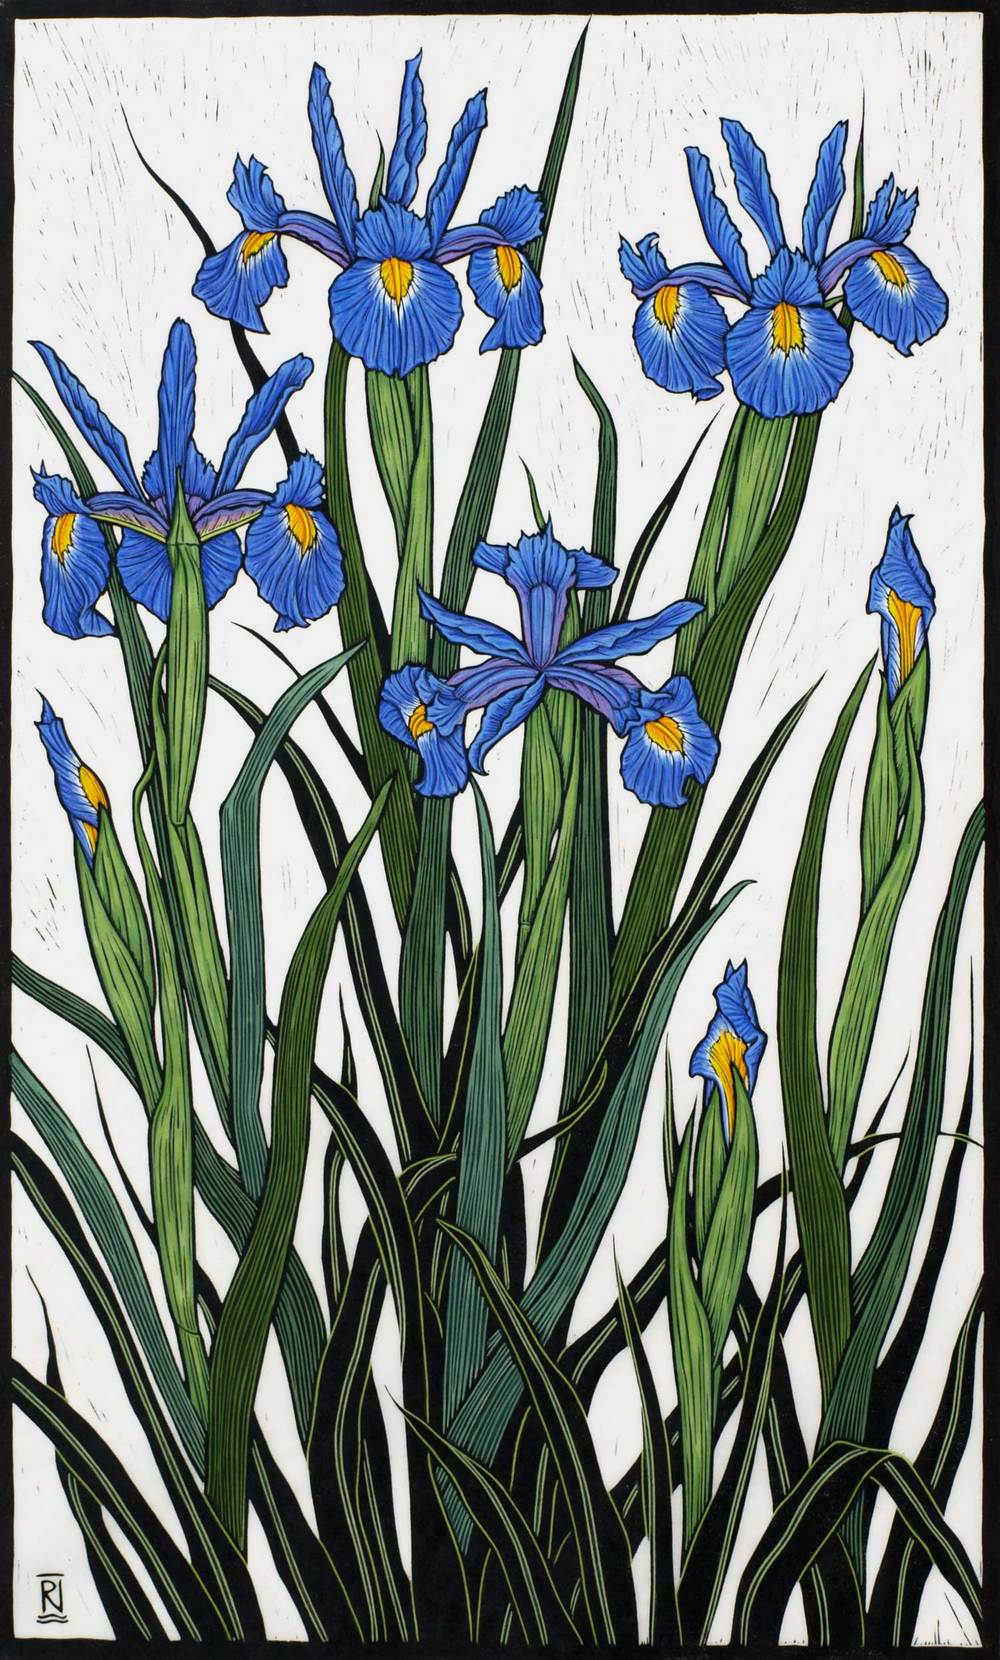 IRISES  82.5 X 49.5 CM    EDITION OF 50  HAND COLOURED LINOCUT ON HANDMADE JAPANESE PAPER  $1,550